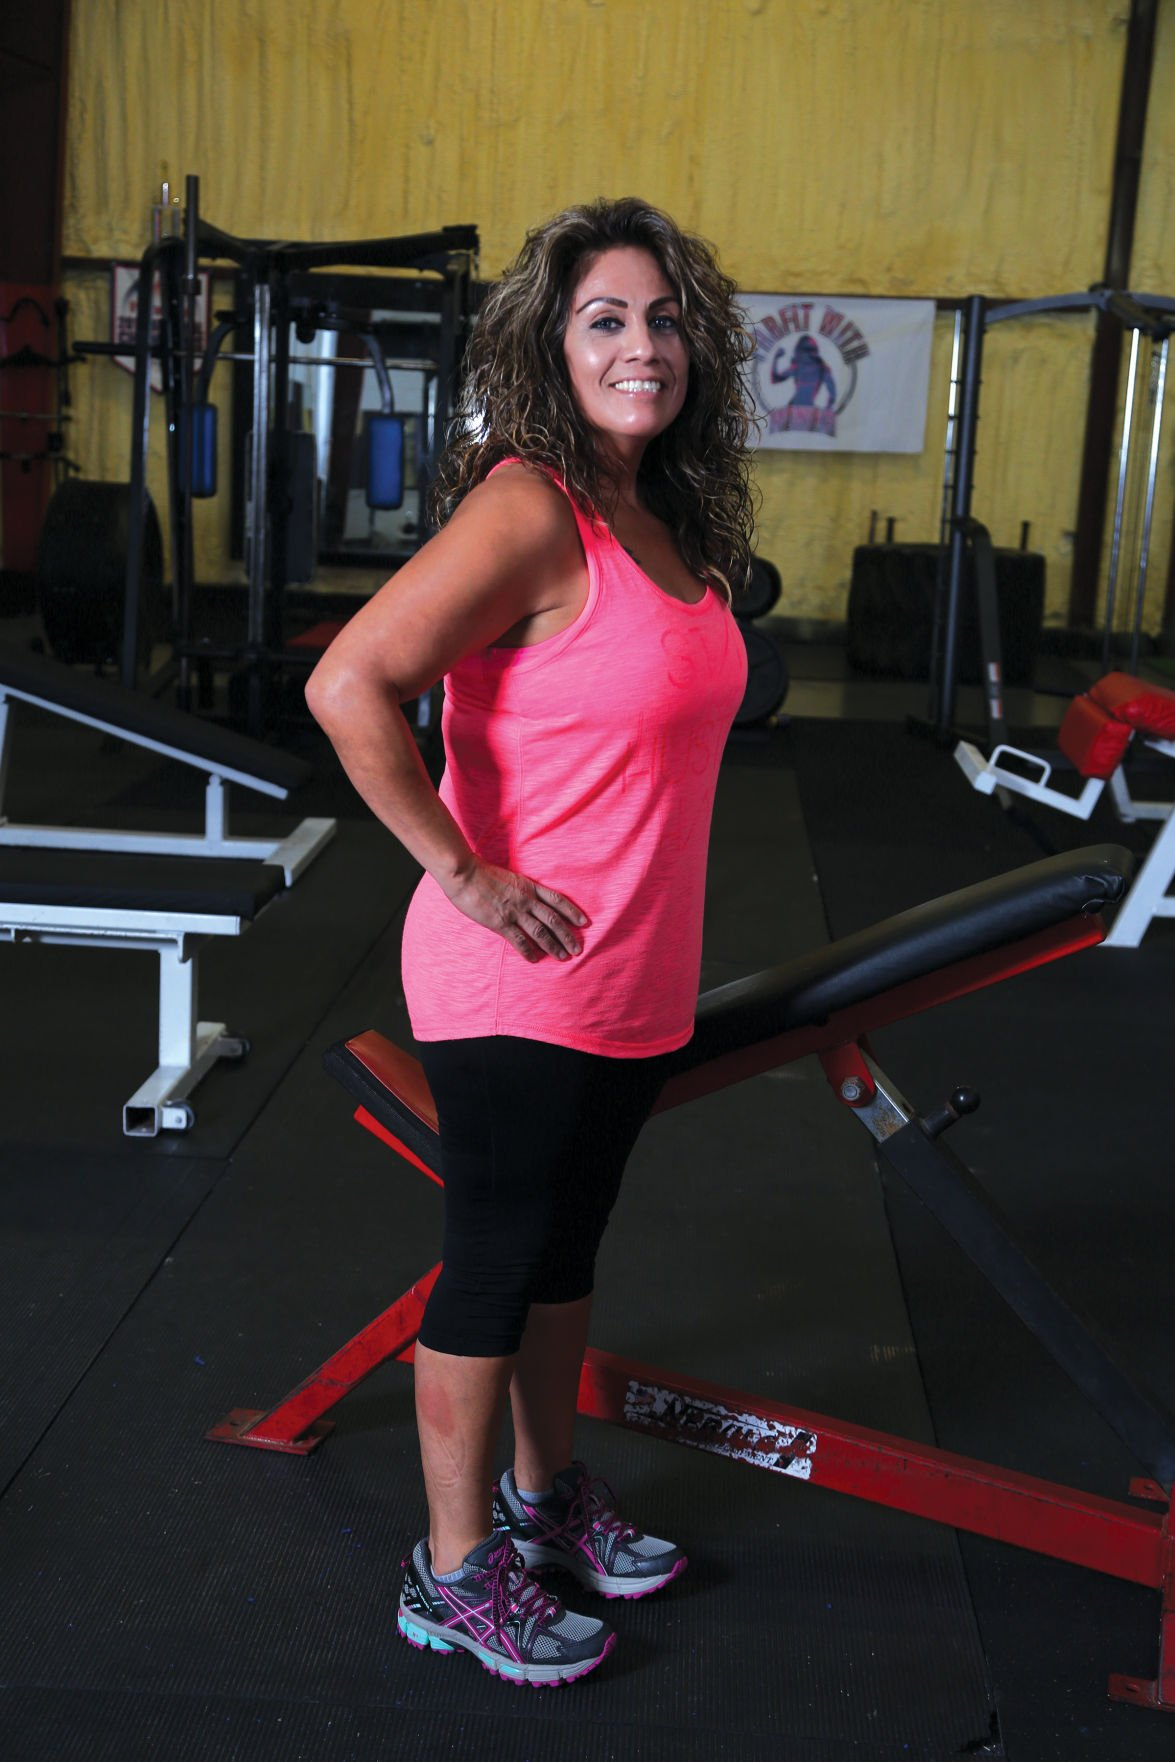 Inspiration perspiration lead to fitter healthier lives: gym owner